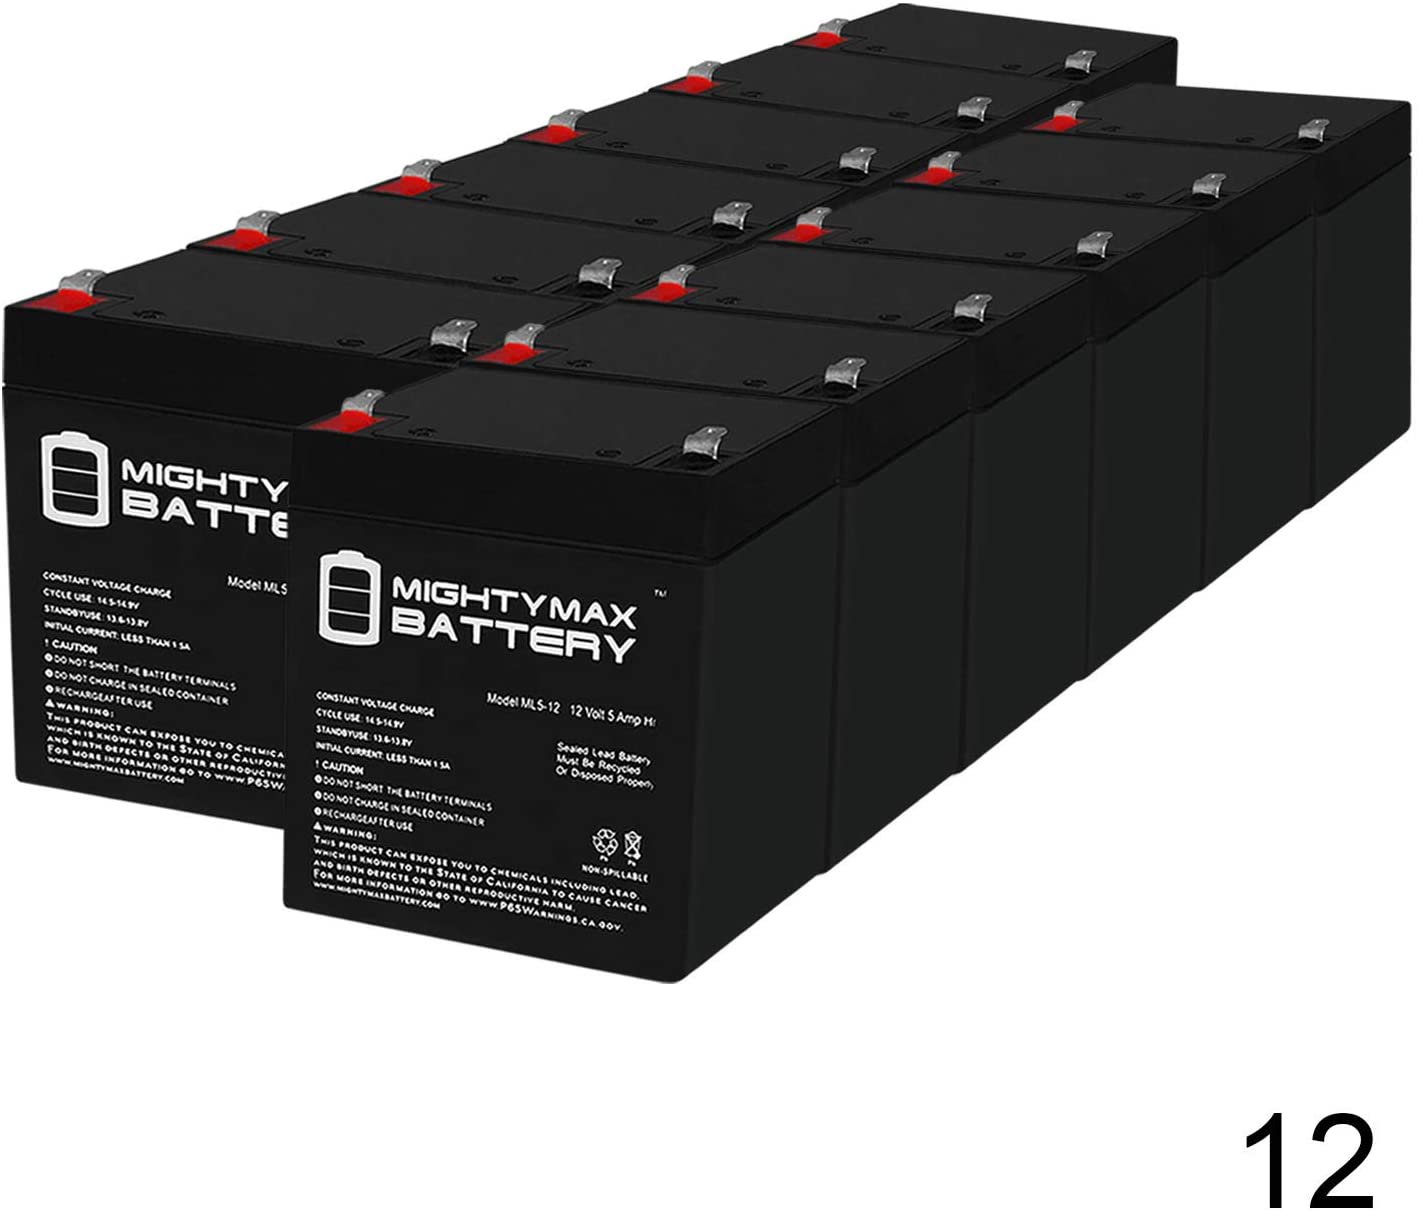 Mighty Max Battery 12V 5Ah Compatible Battery for RBC20J APC UPS - 12 Pack Brand Product